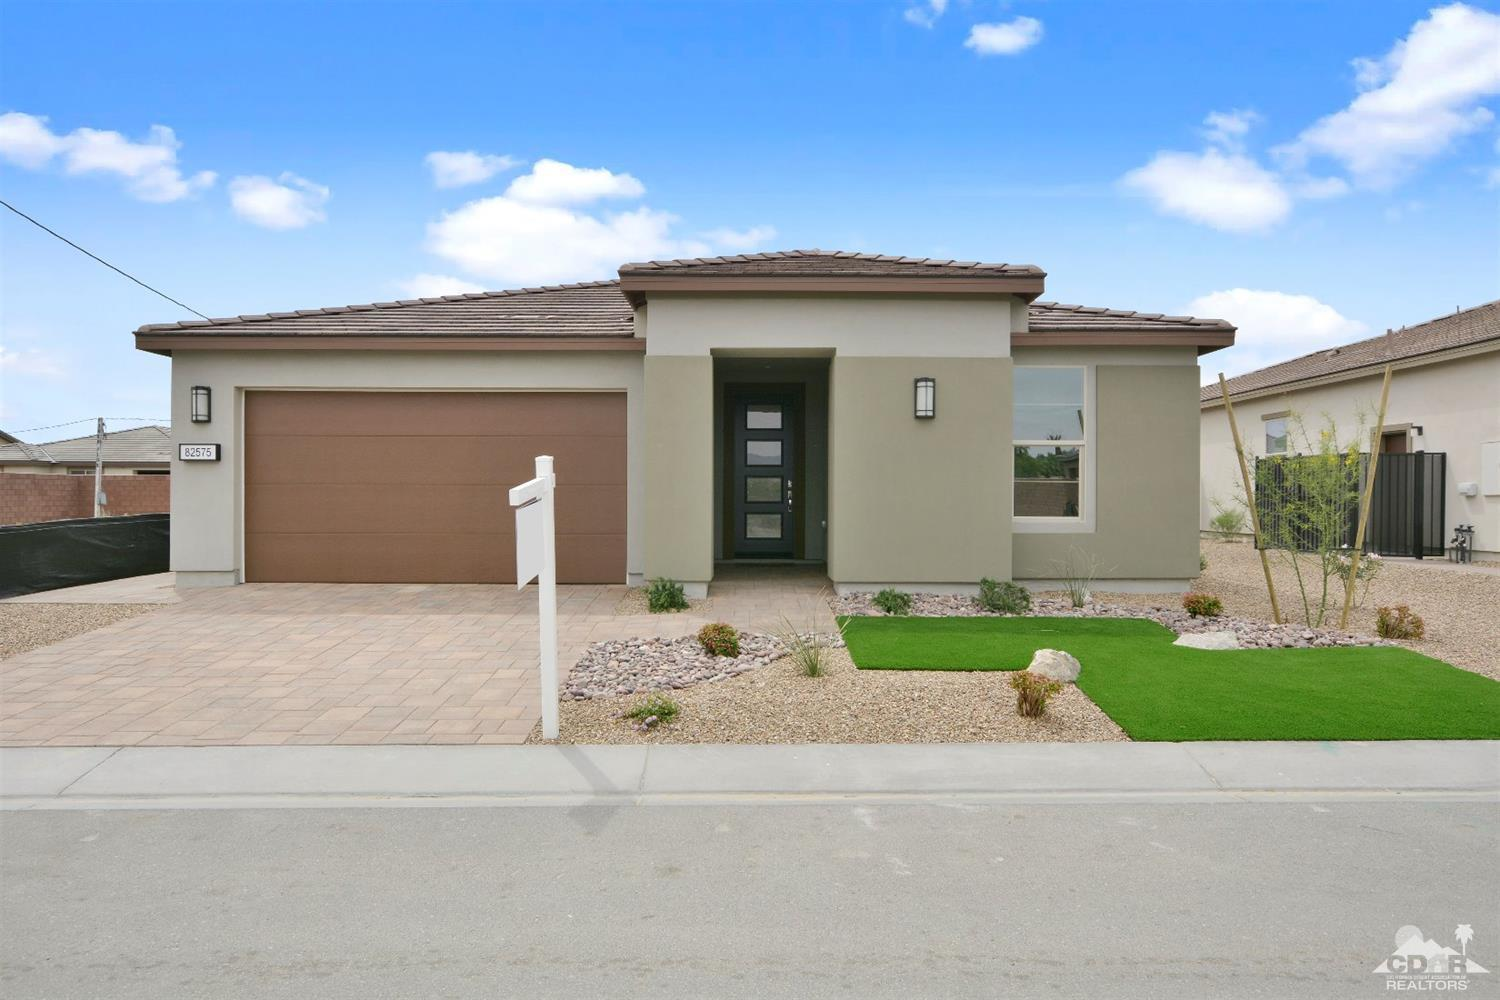 Photo of 82575 East McCarroll (Lot 4016) Drive, Indio, CA 92201